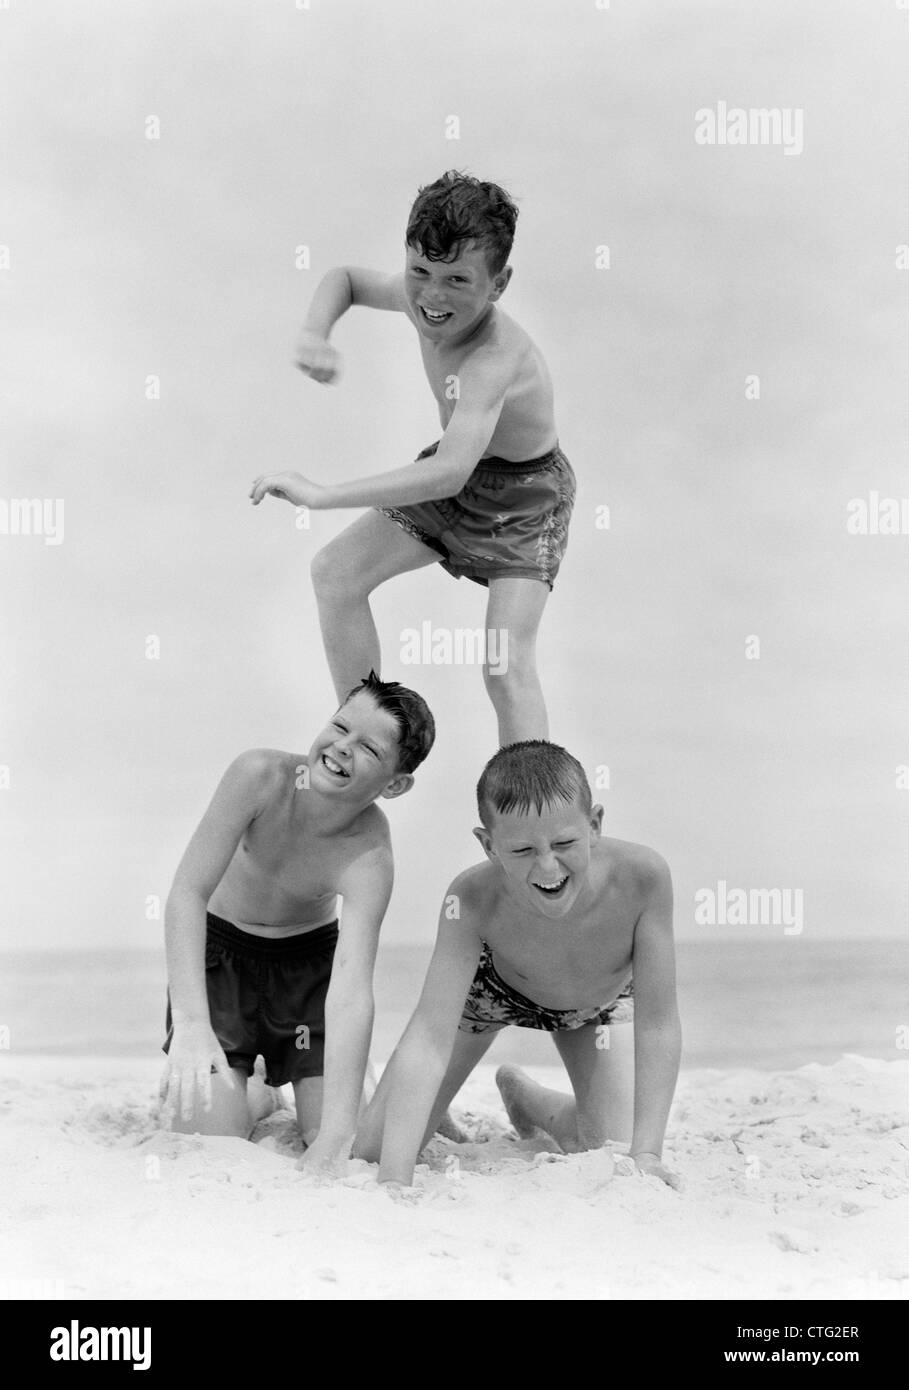 1950s THREE BOYS IN BATHING SUITS FORM A PYRAMID IN THE SAND ON THE BEACH - Stock Image